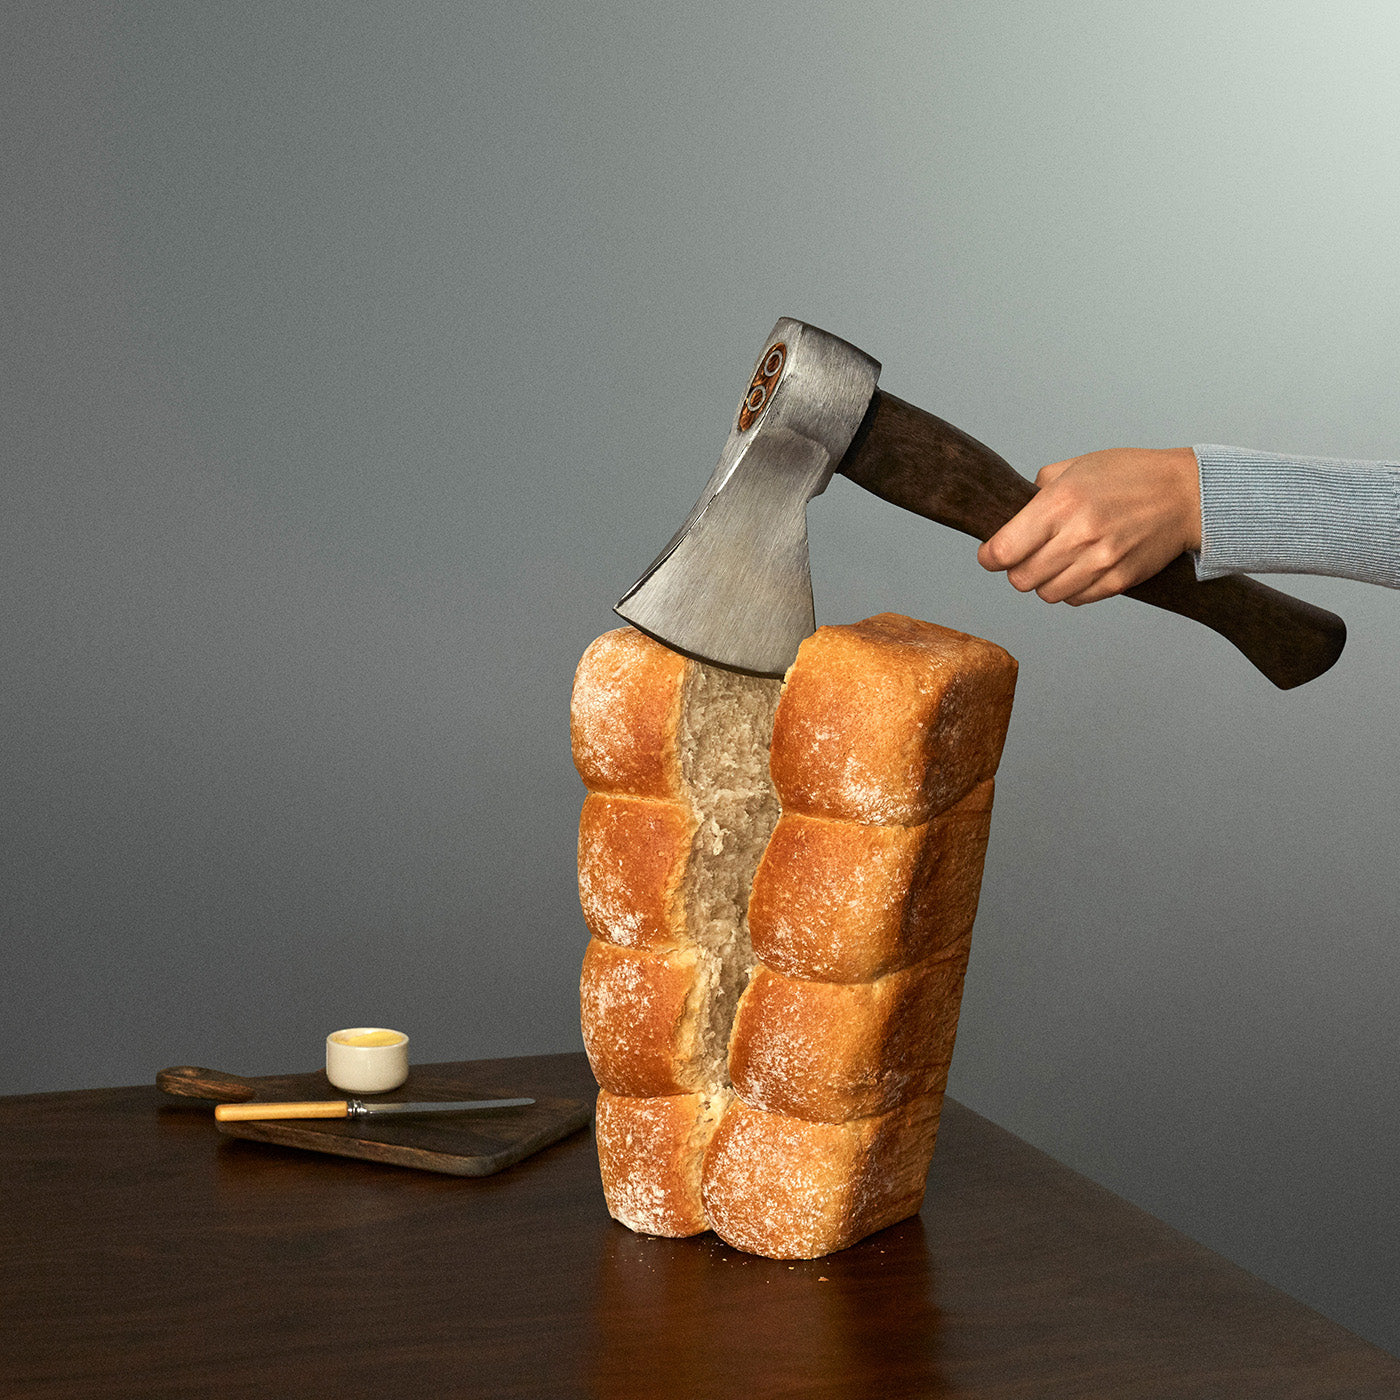 Chopping bread with an axe. Image by Fragmento Universo